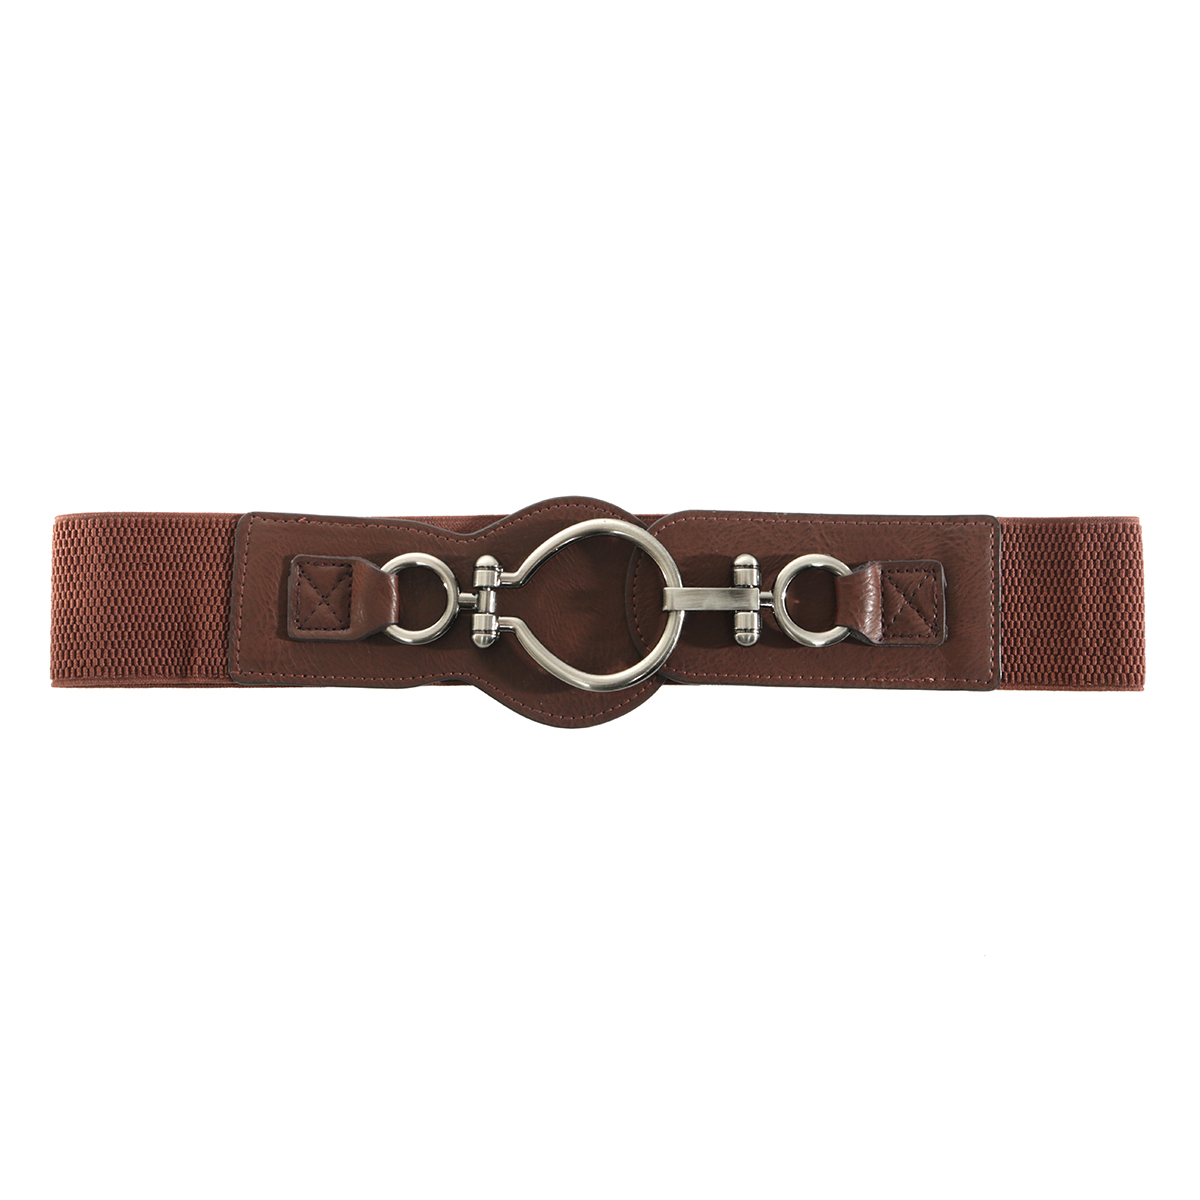 "BROWN 31"" BELT"